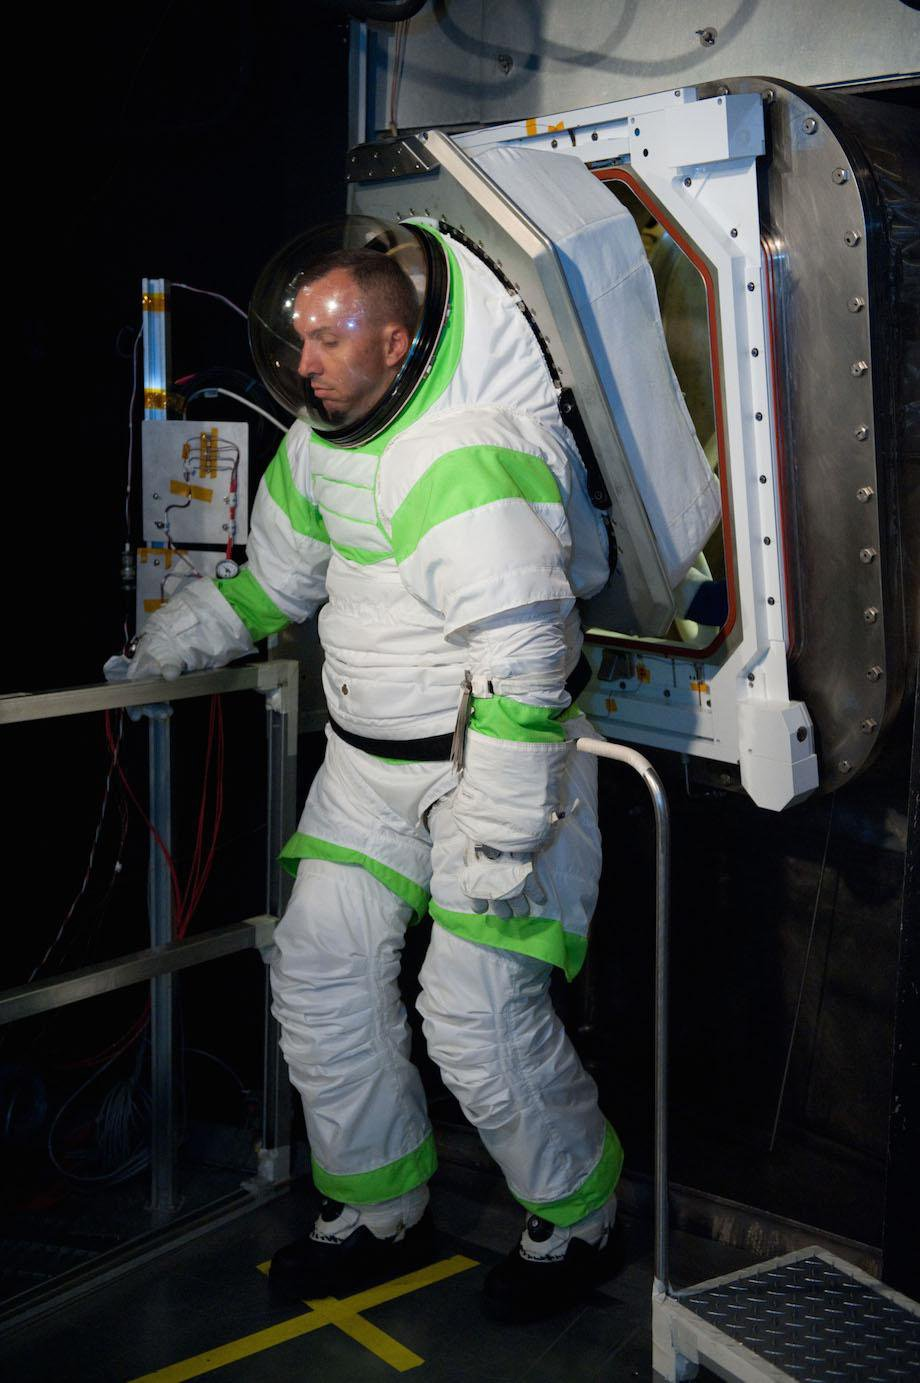 check-out-the-evolution-of-the-space-suit-41-hq-photos-32